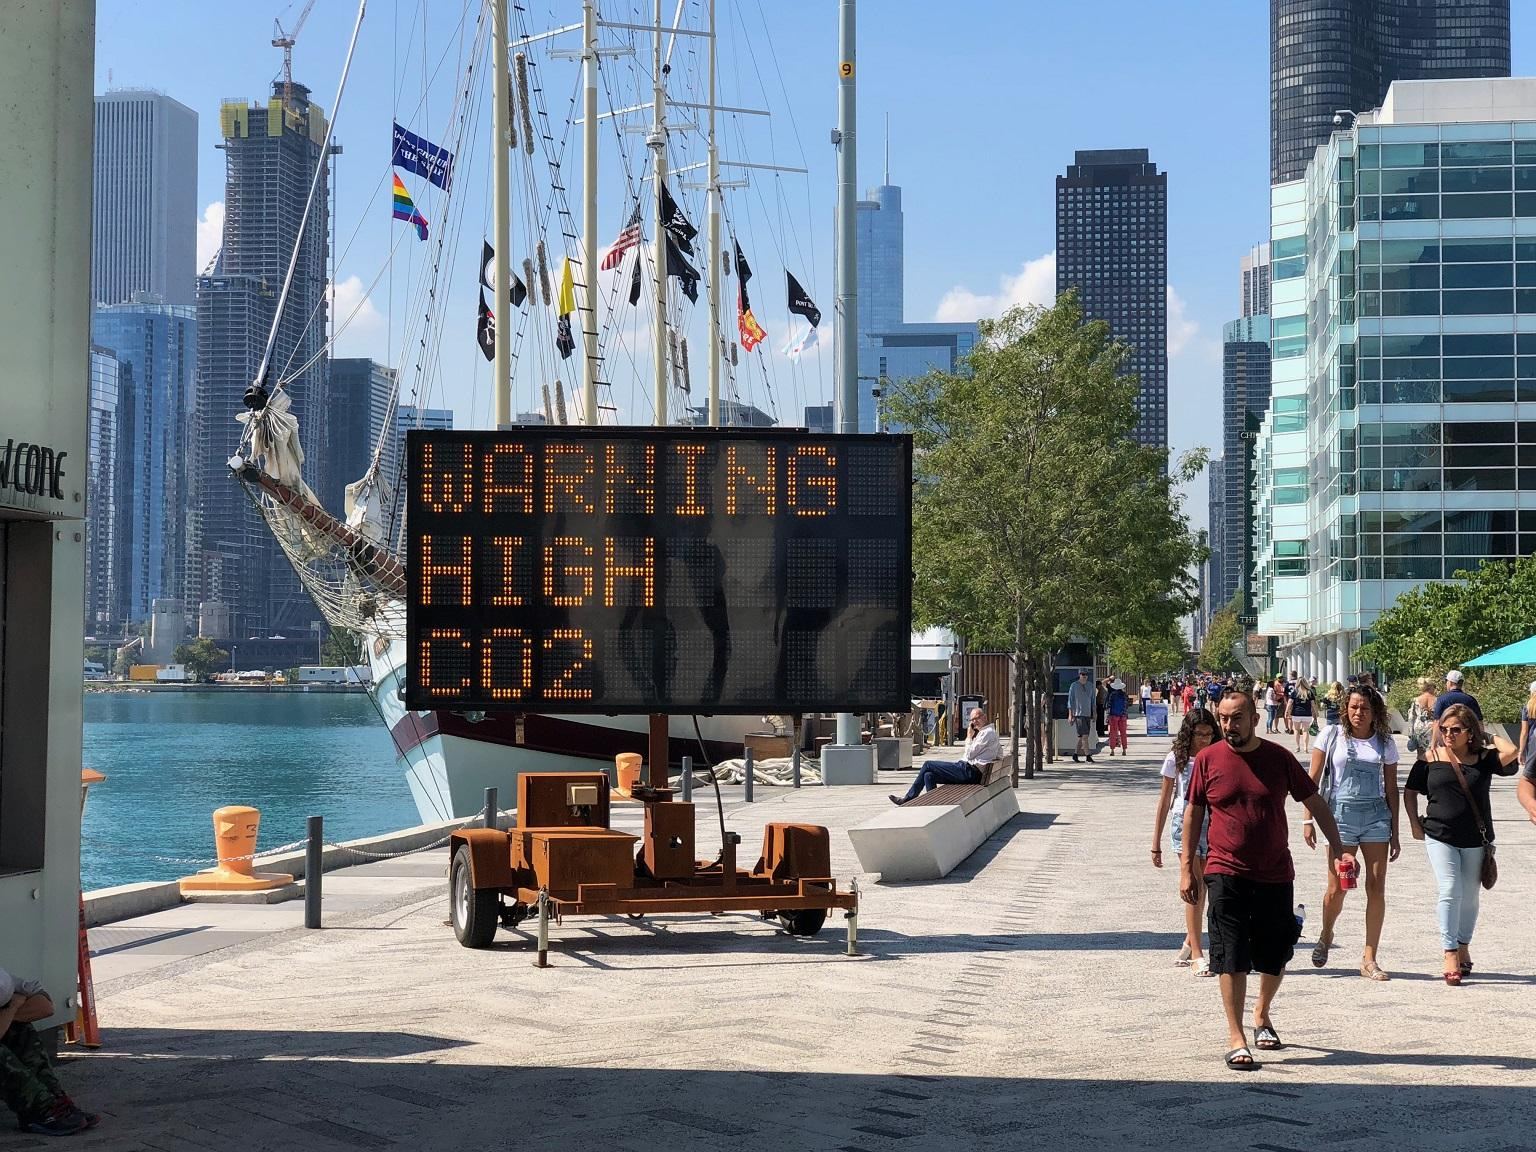 A new art installation at Navy Pier uses a solar-powered highway message board to warn of the dangers of climate change. (Alex Ruppenthal / Chicago Tonight)